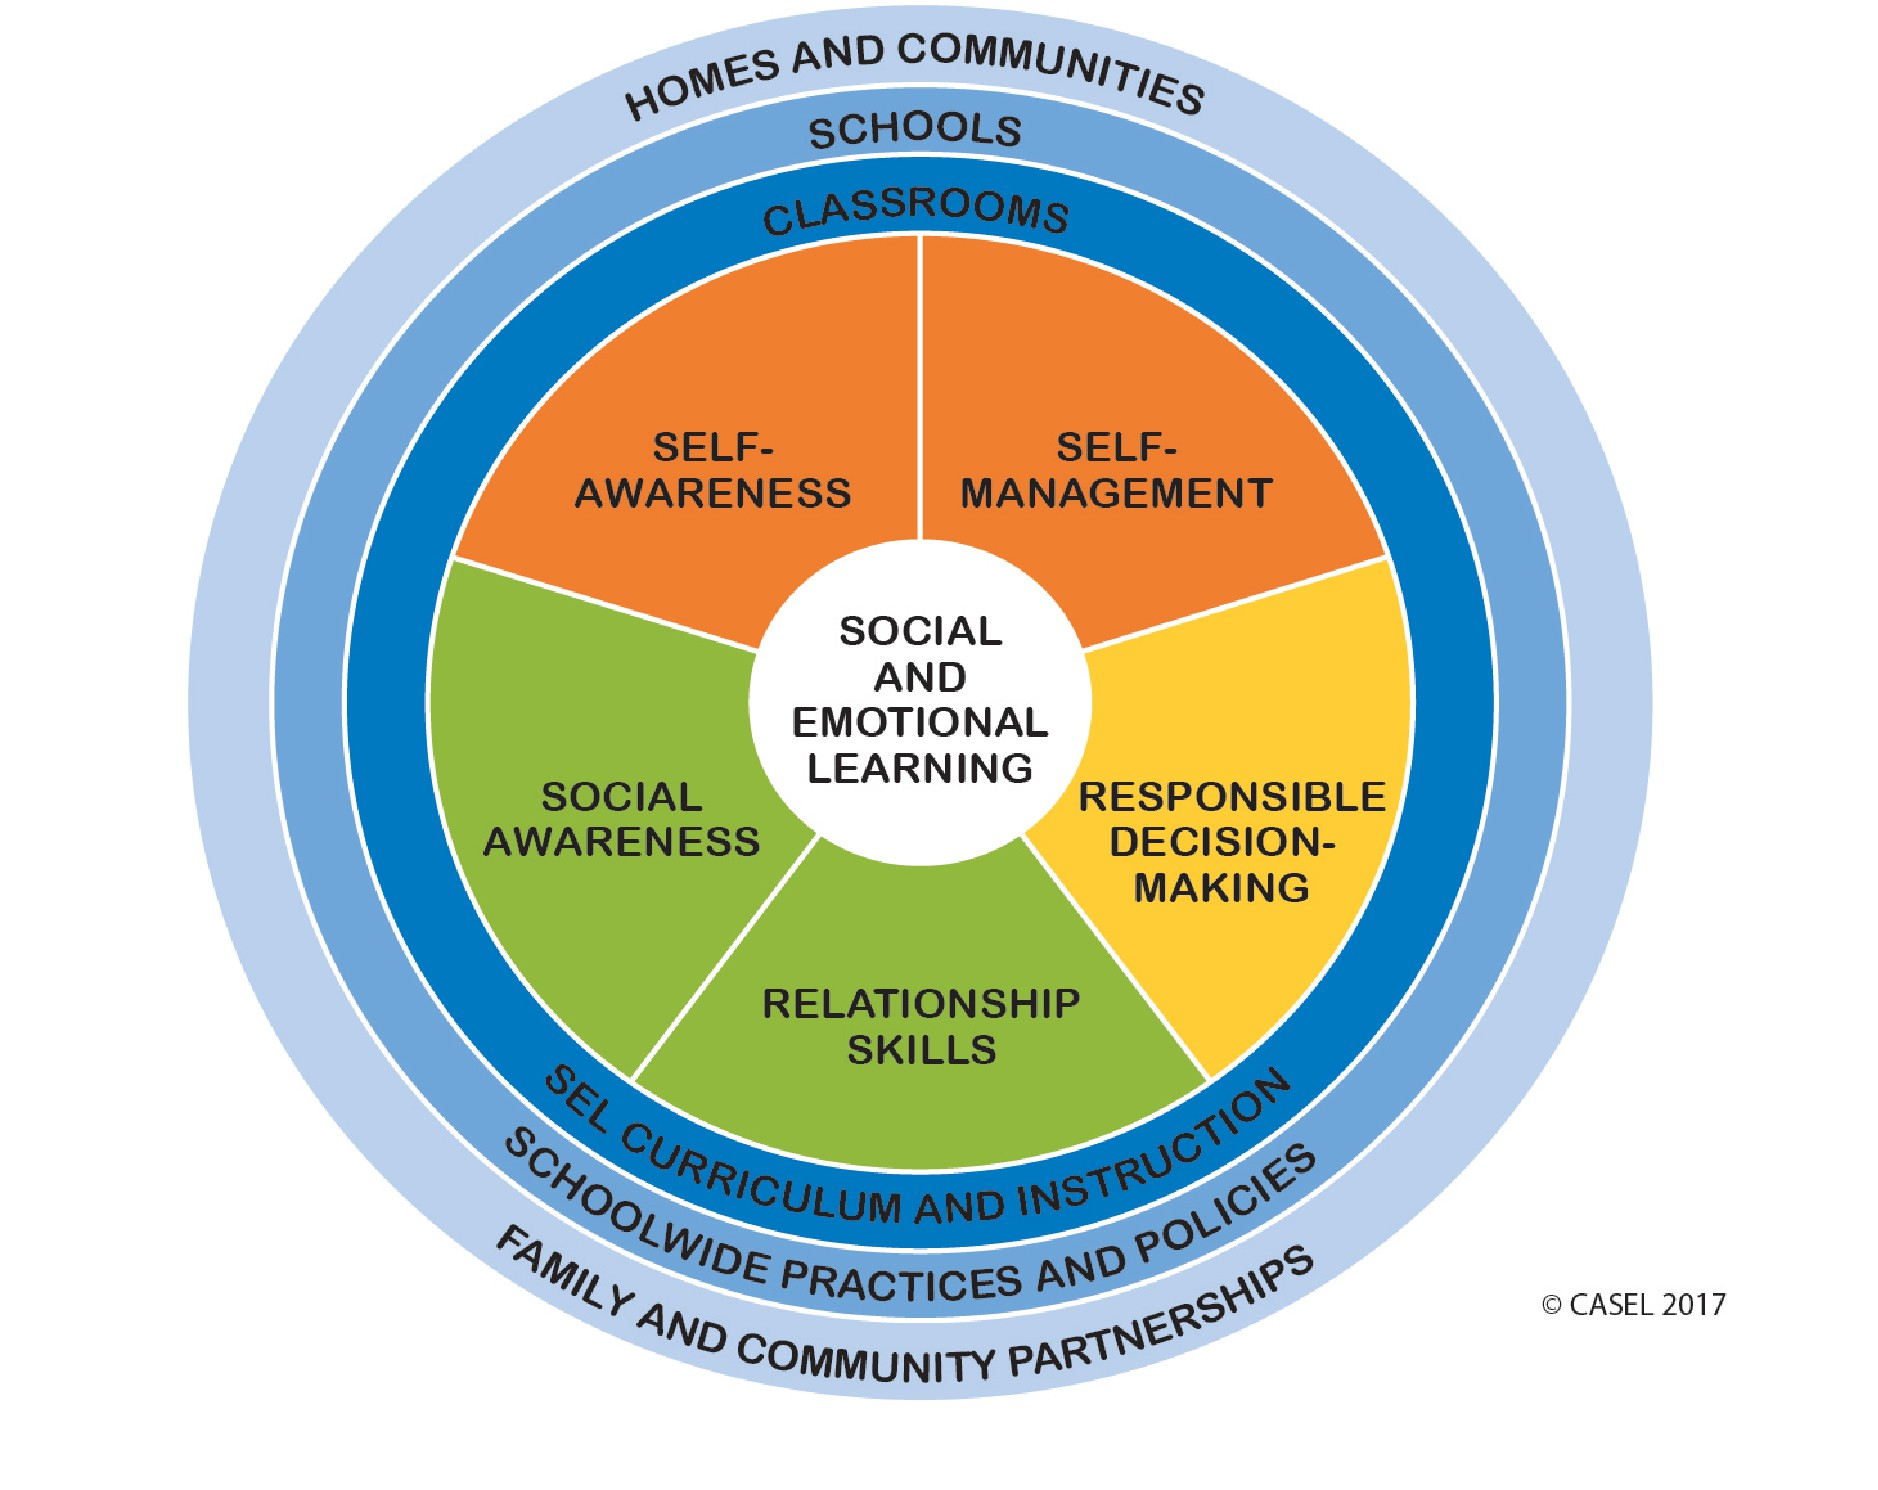 We use the five social emotional learning competencies to provide programming for students.